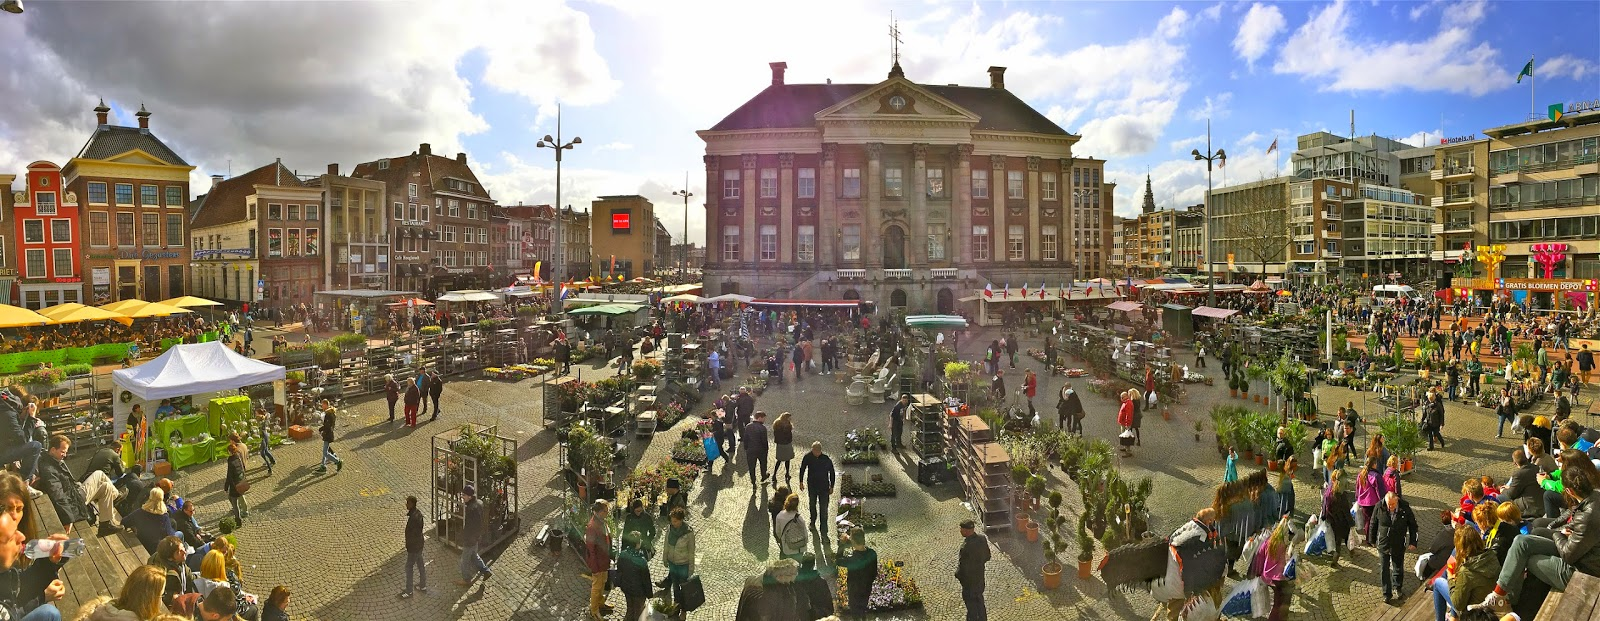 Panorama shot of the flower market (bloemetjesmarkt) in Groningen, the Netherlands.